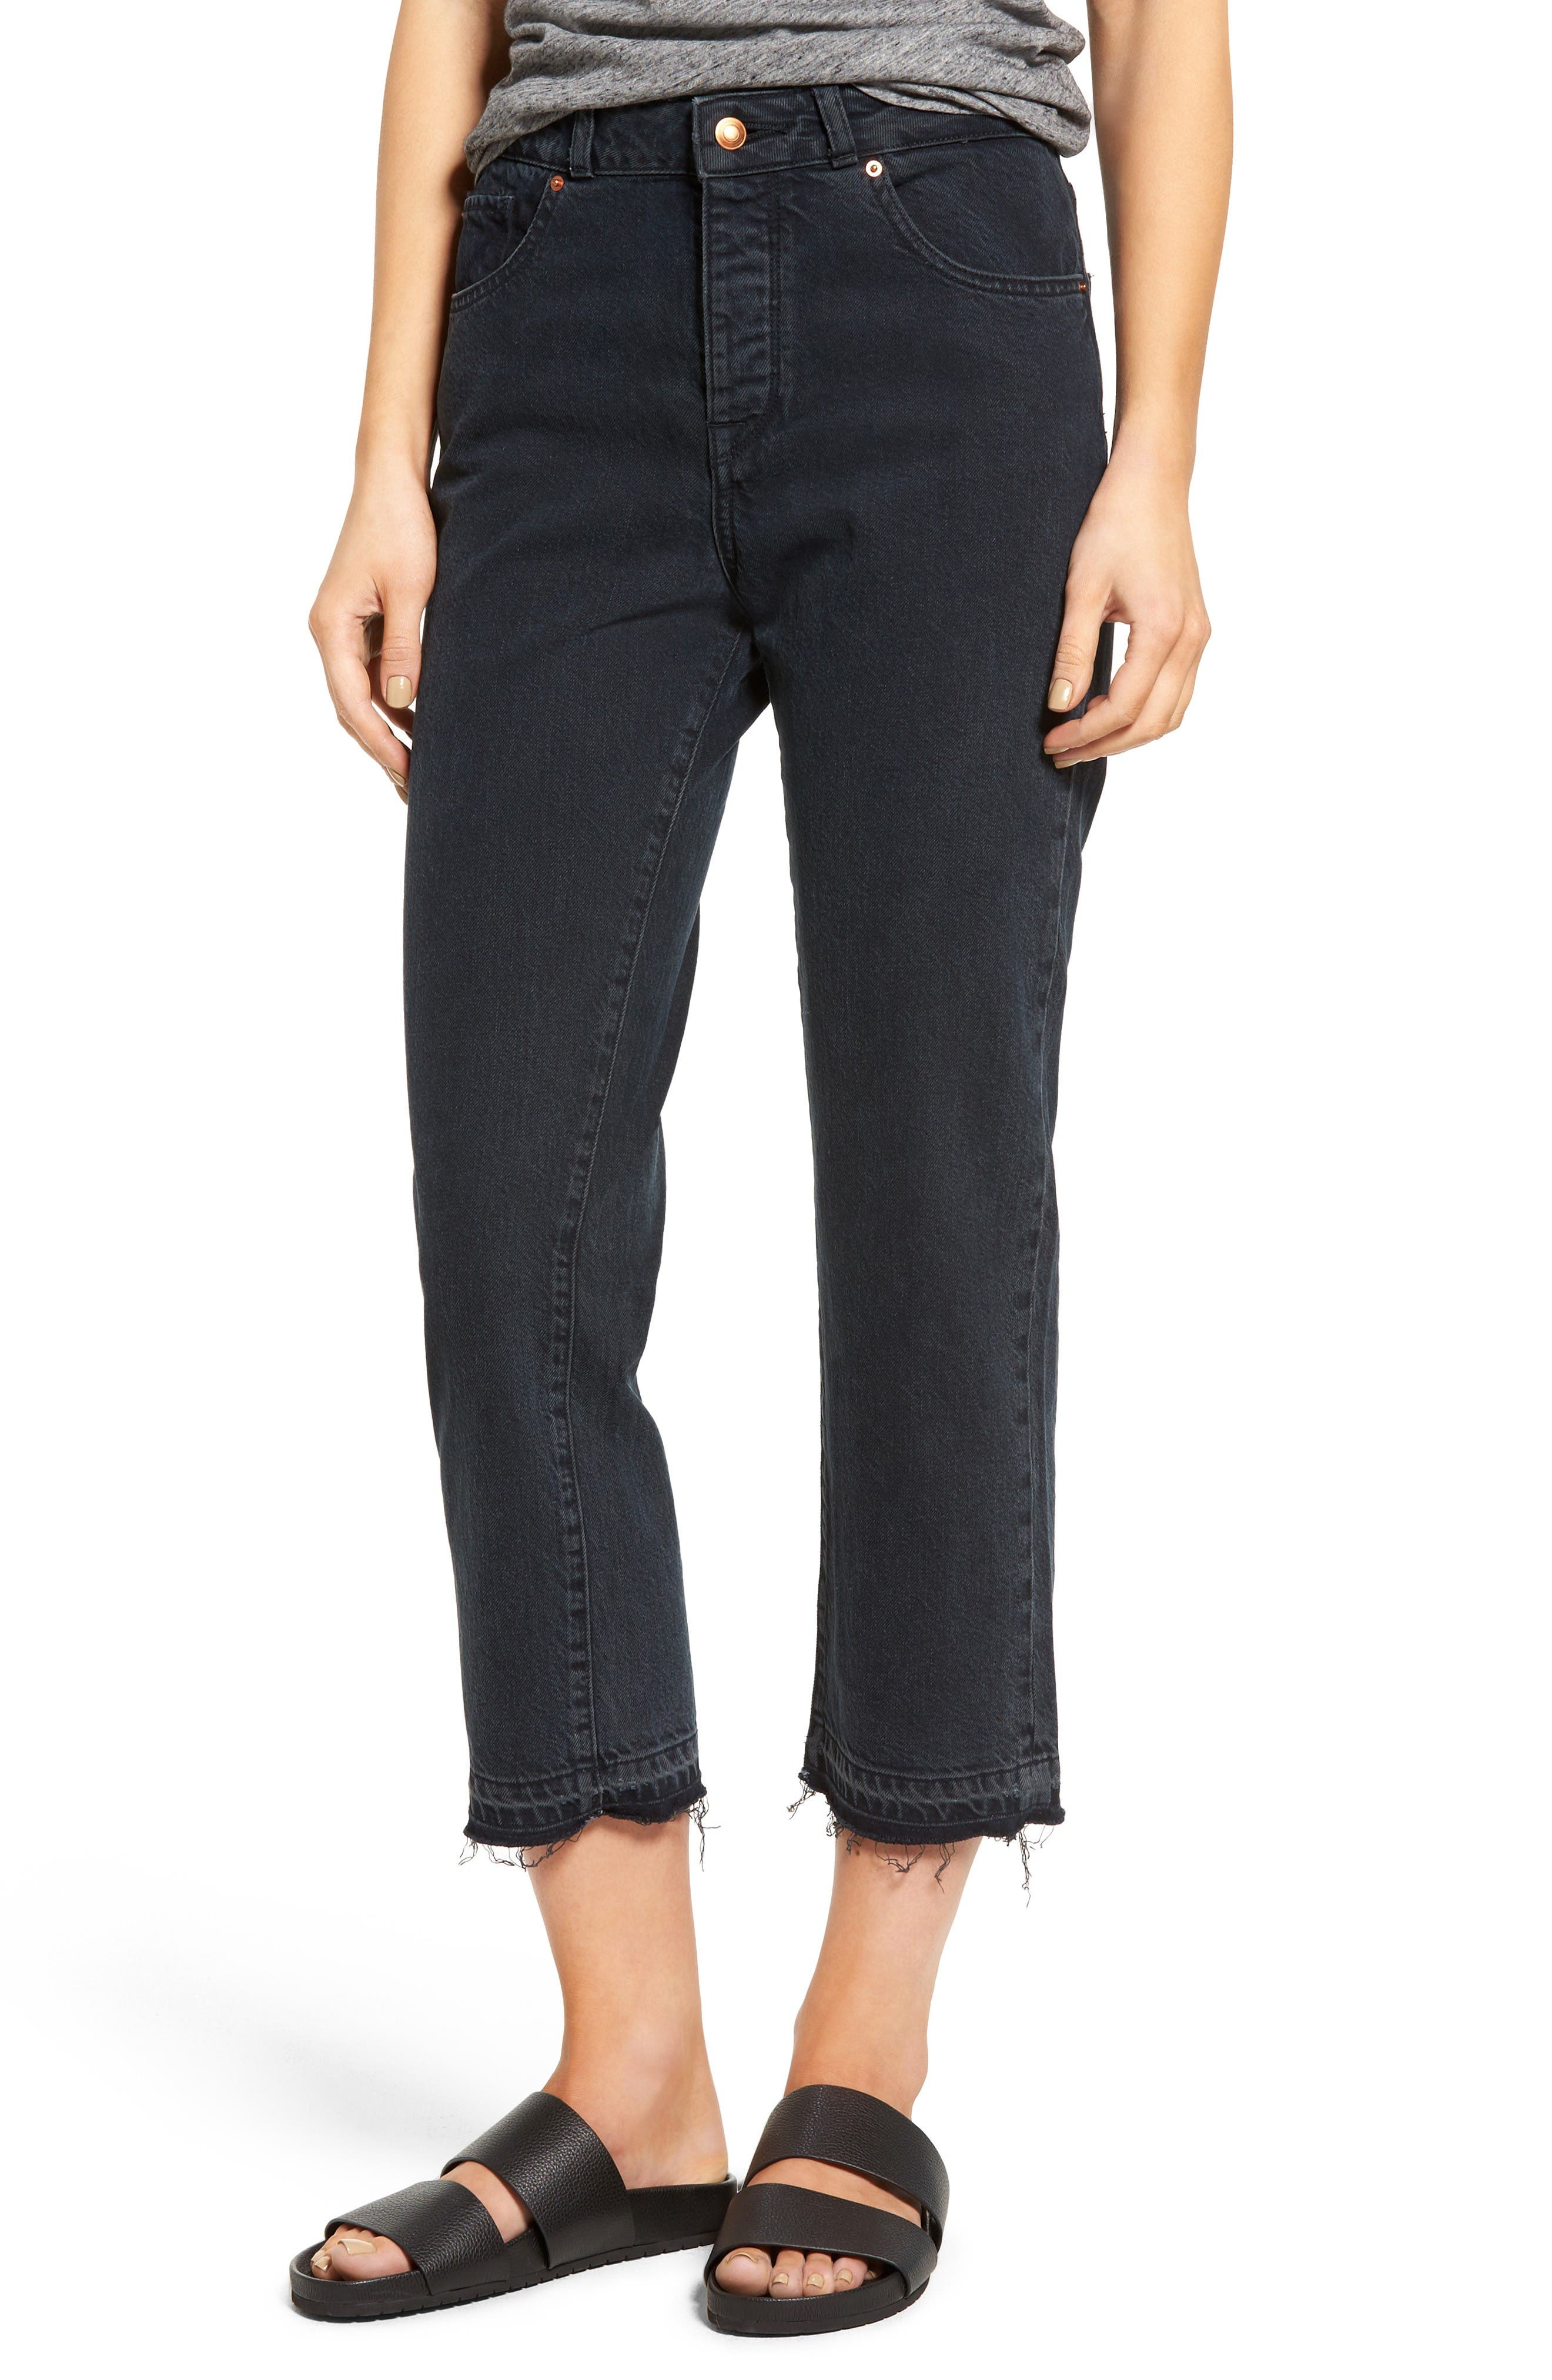 Alternate Image 1 Selected - DL1961 Patti High Rise Straight Leg Jeans (Fallen)